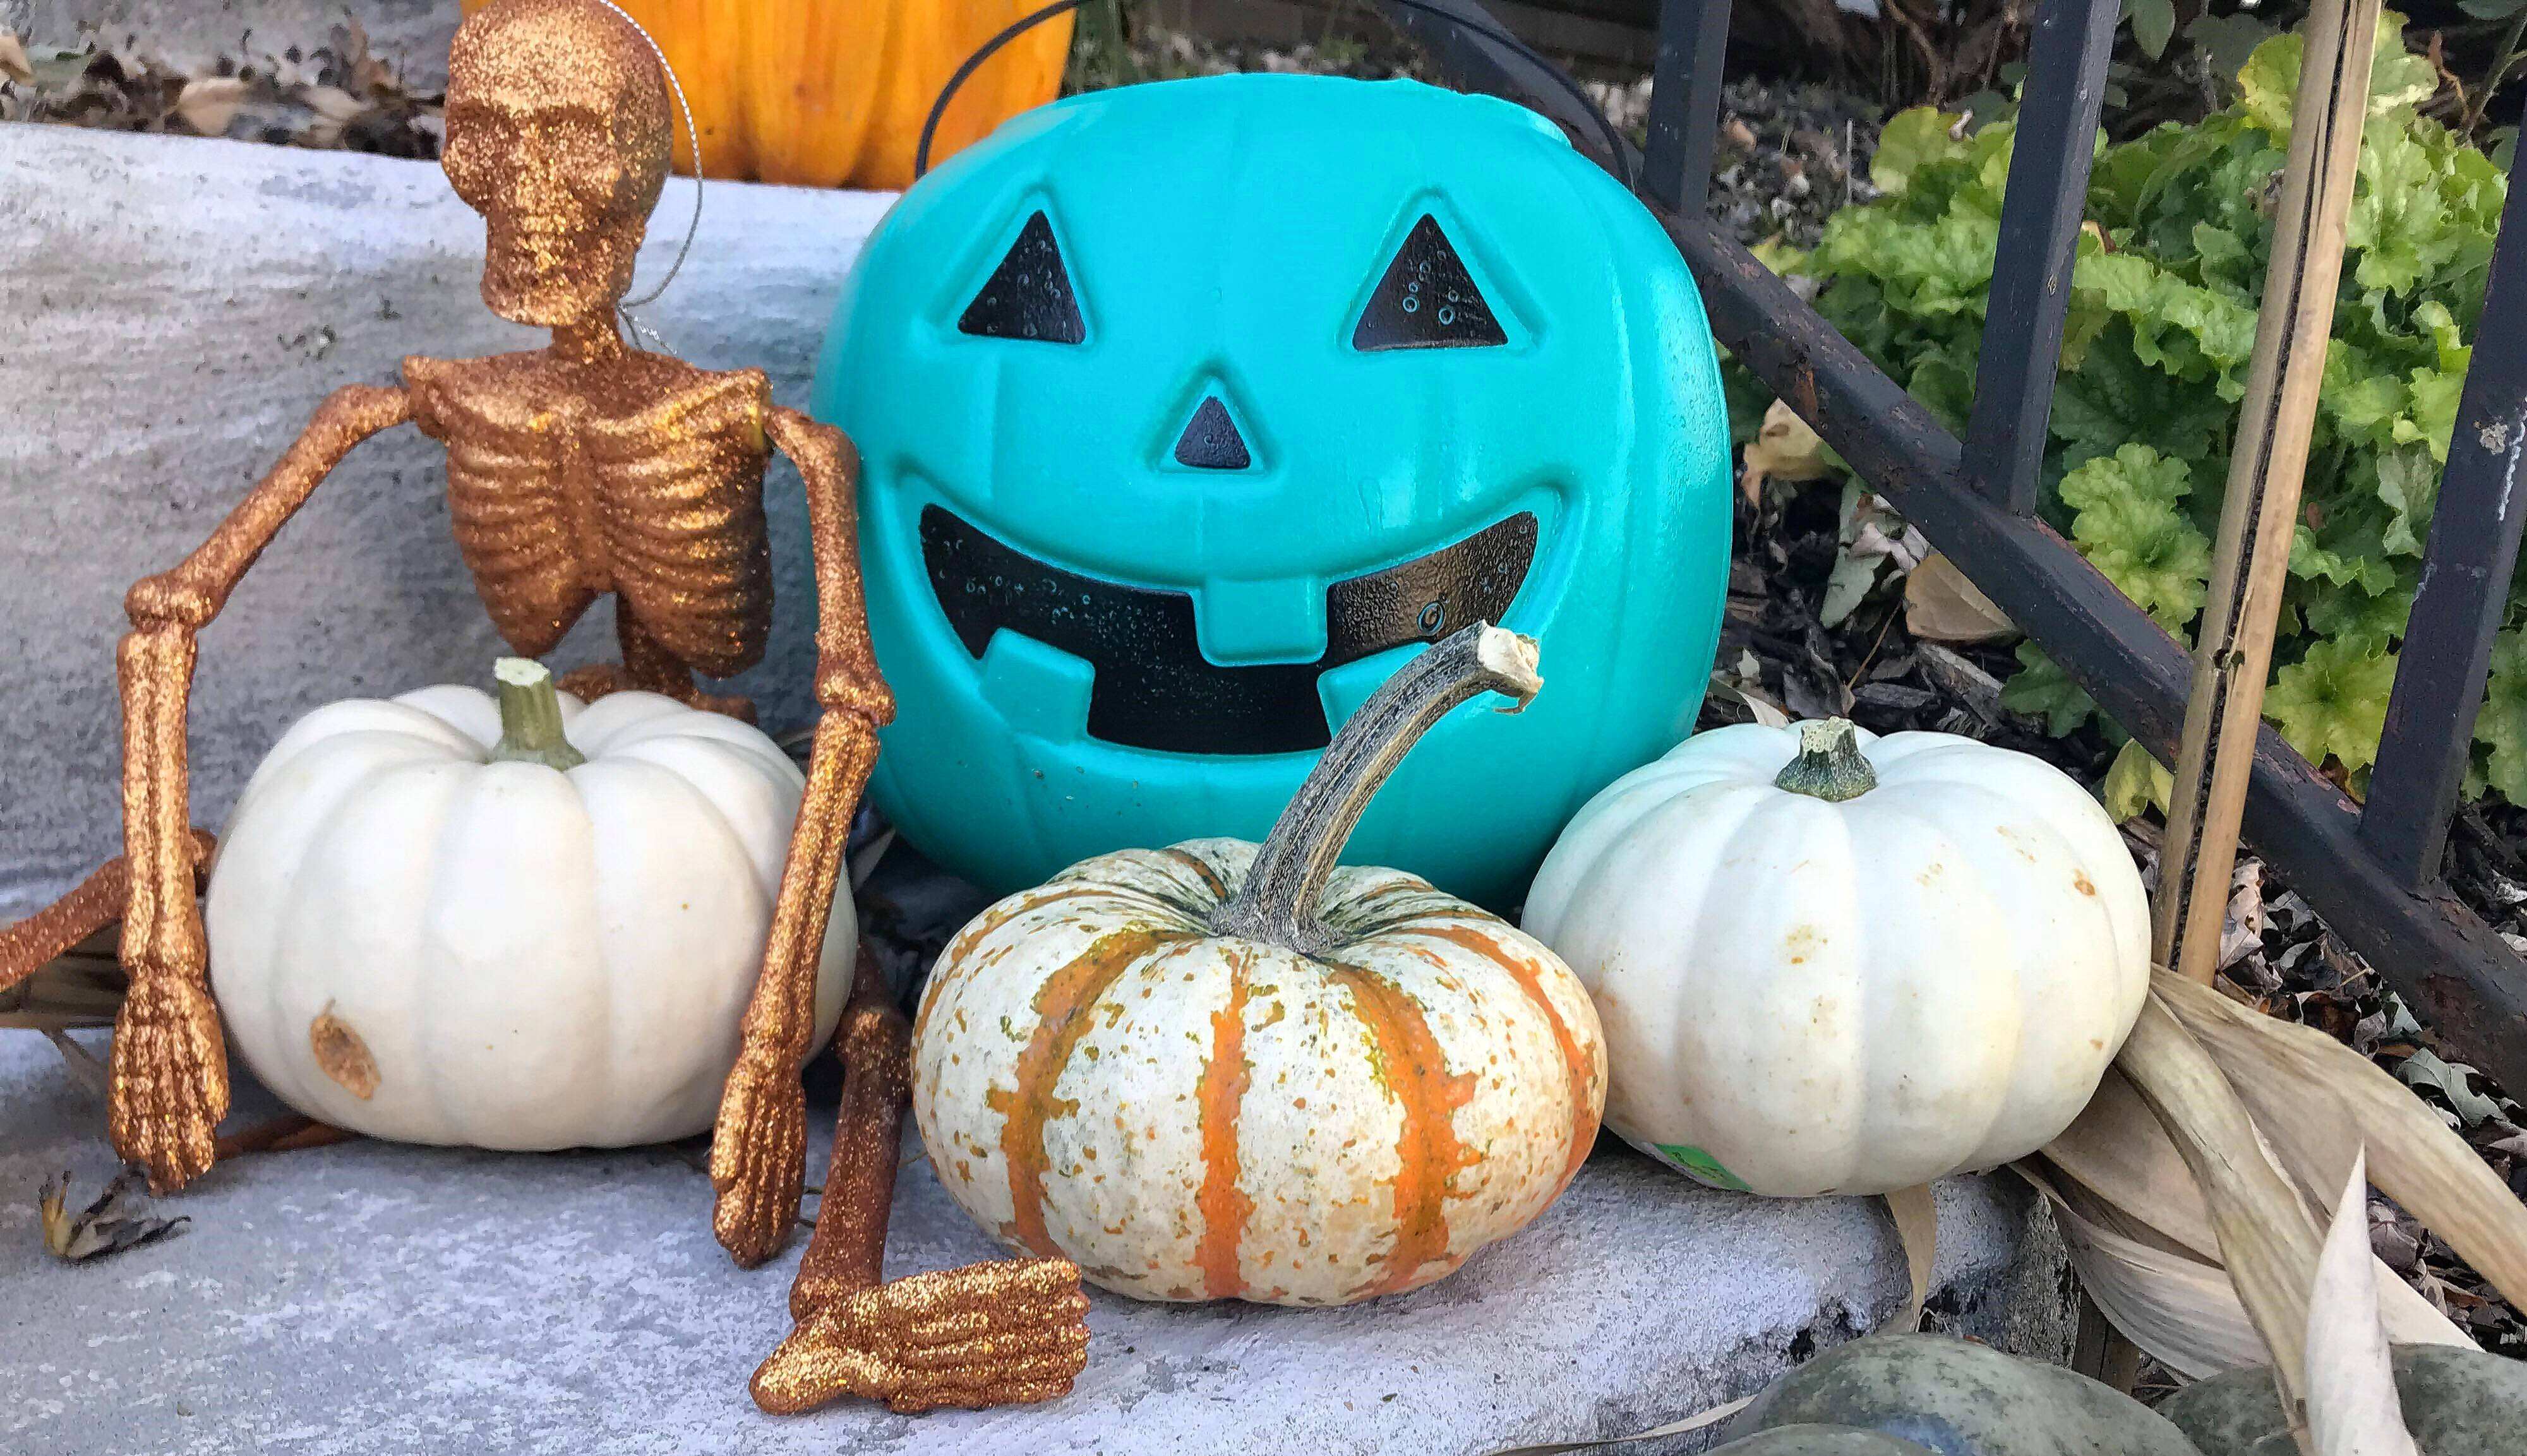 What a teal pumpkin on the porch means for trick-or-treaters with allergies